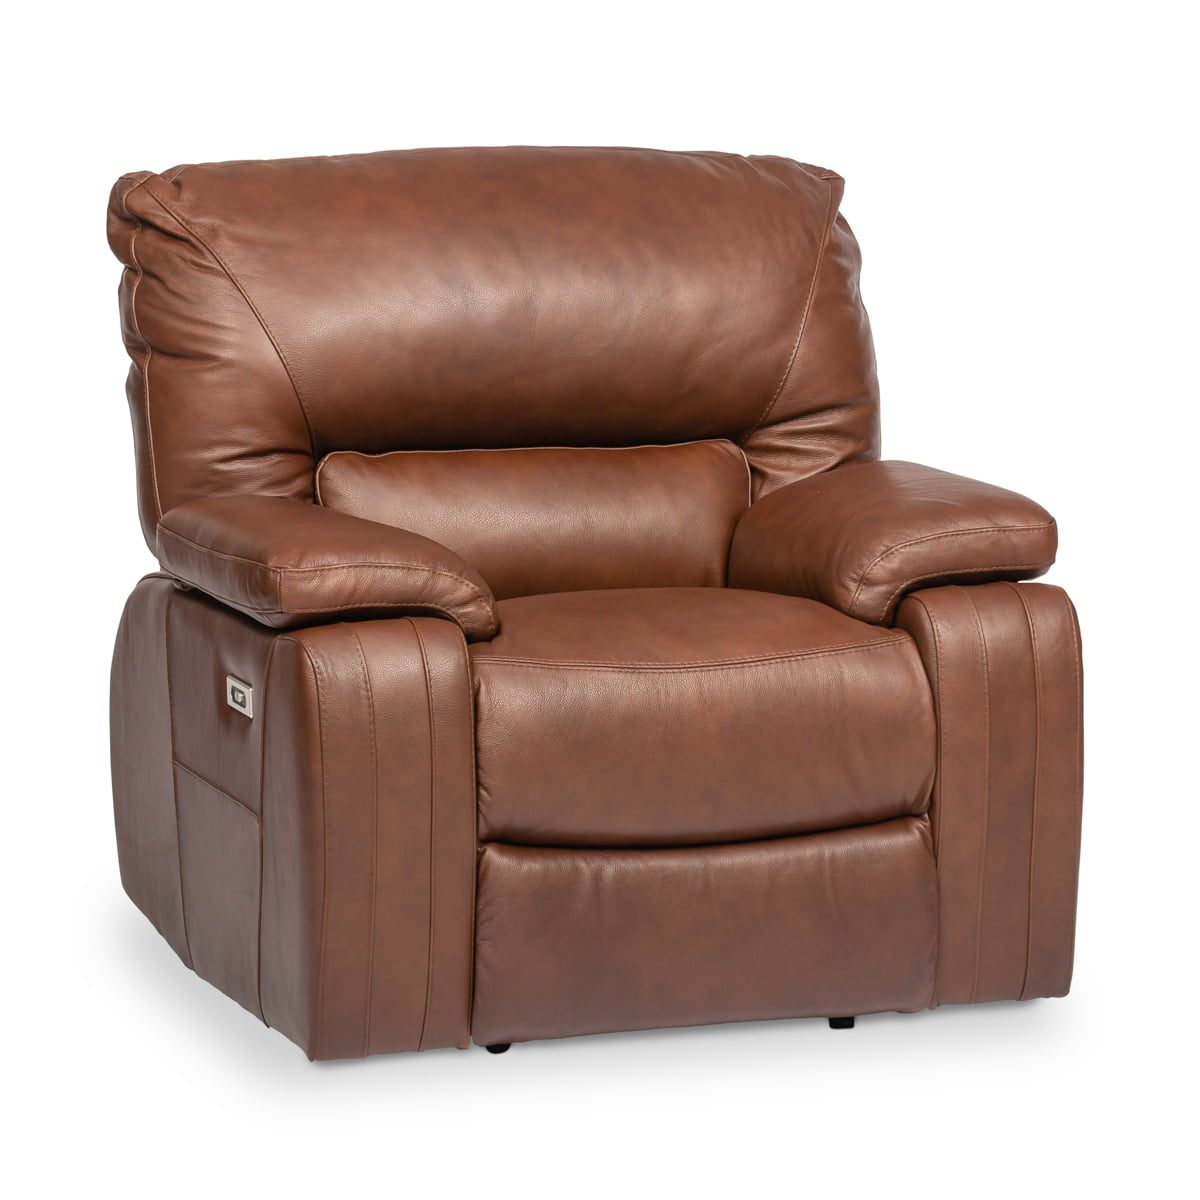 Amerigo Leather Powered Recliner